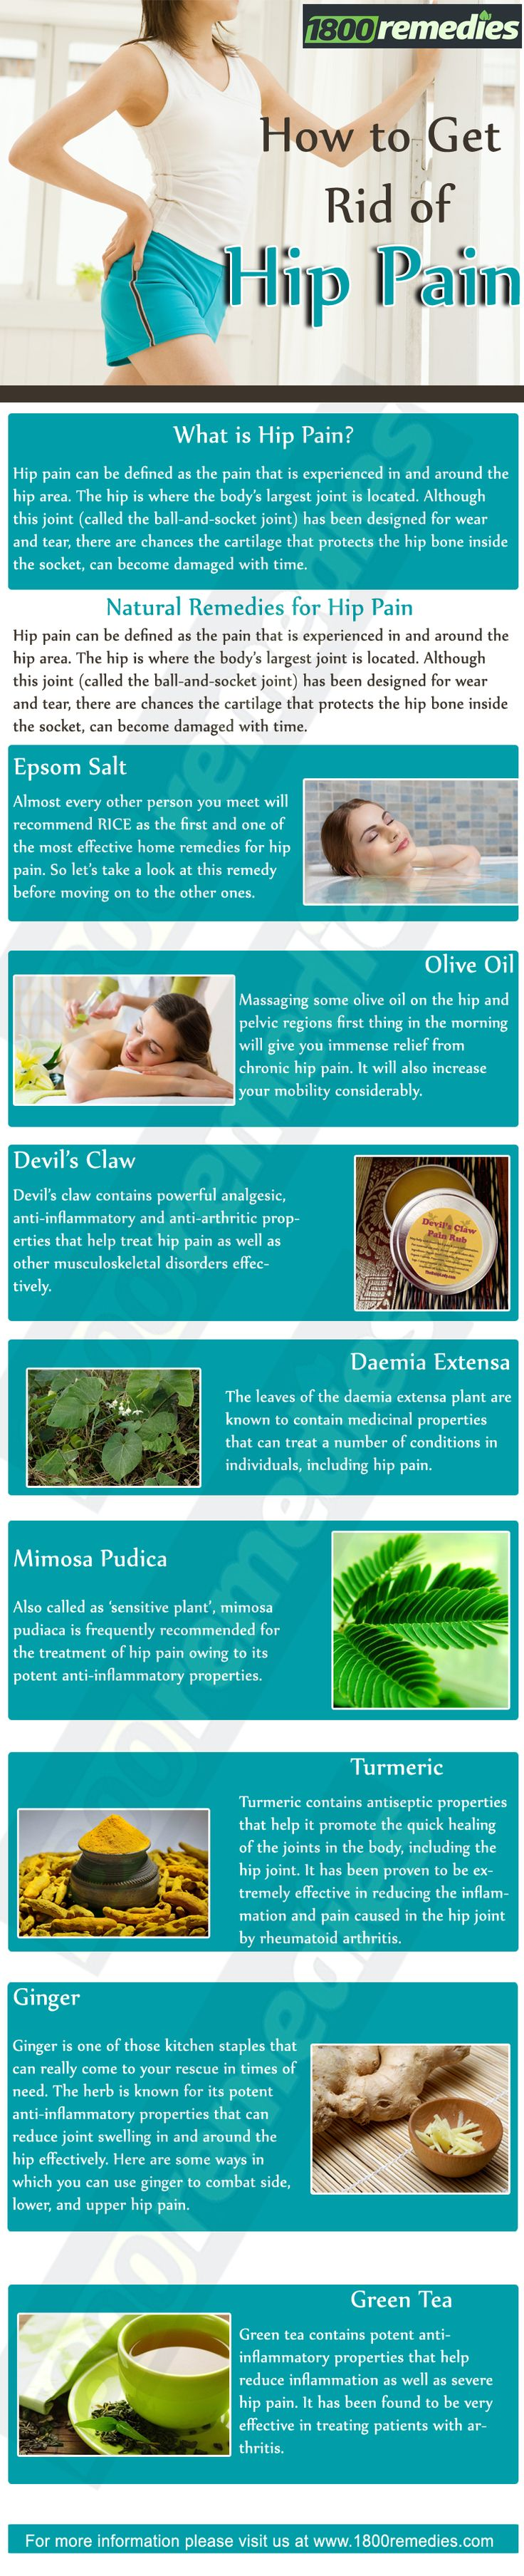 here are some of the most common home remedies recommended for hip pain.